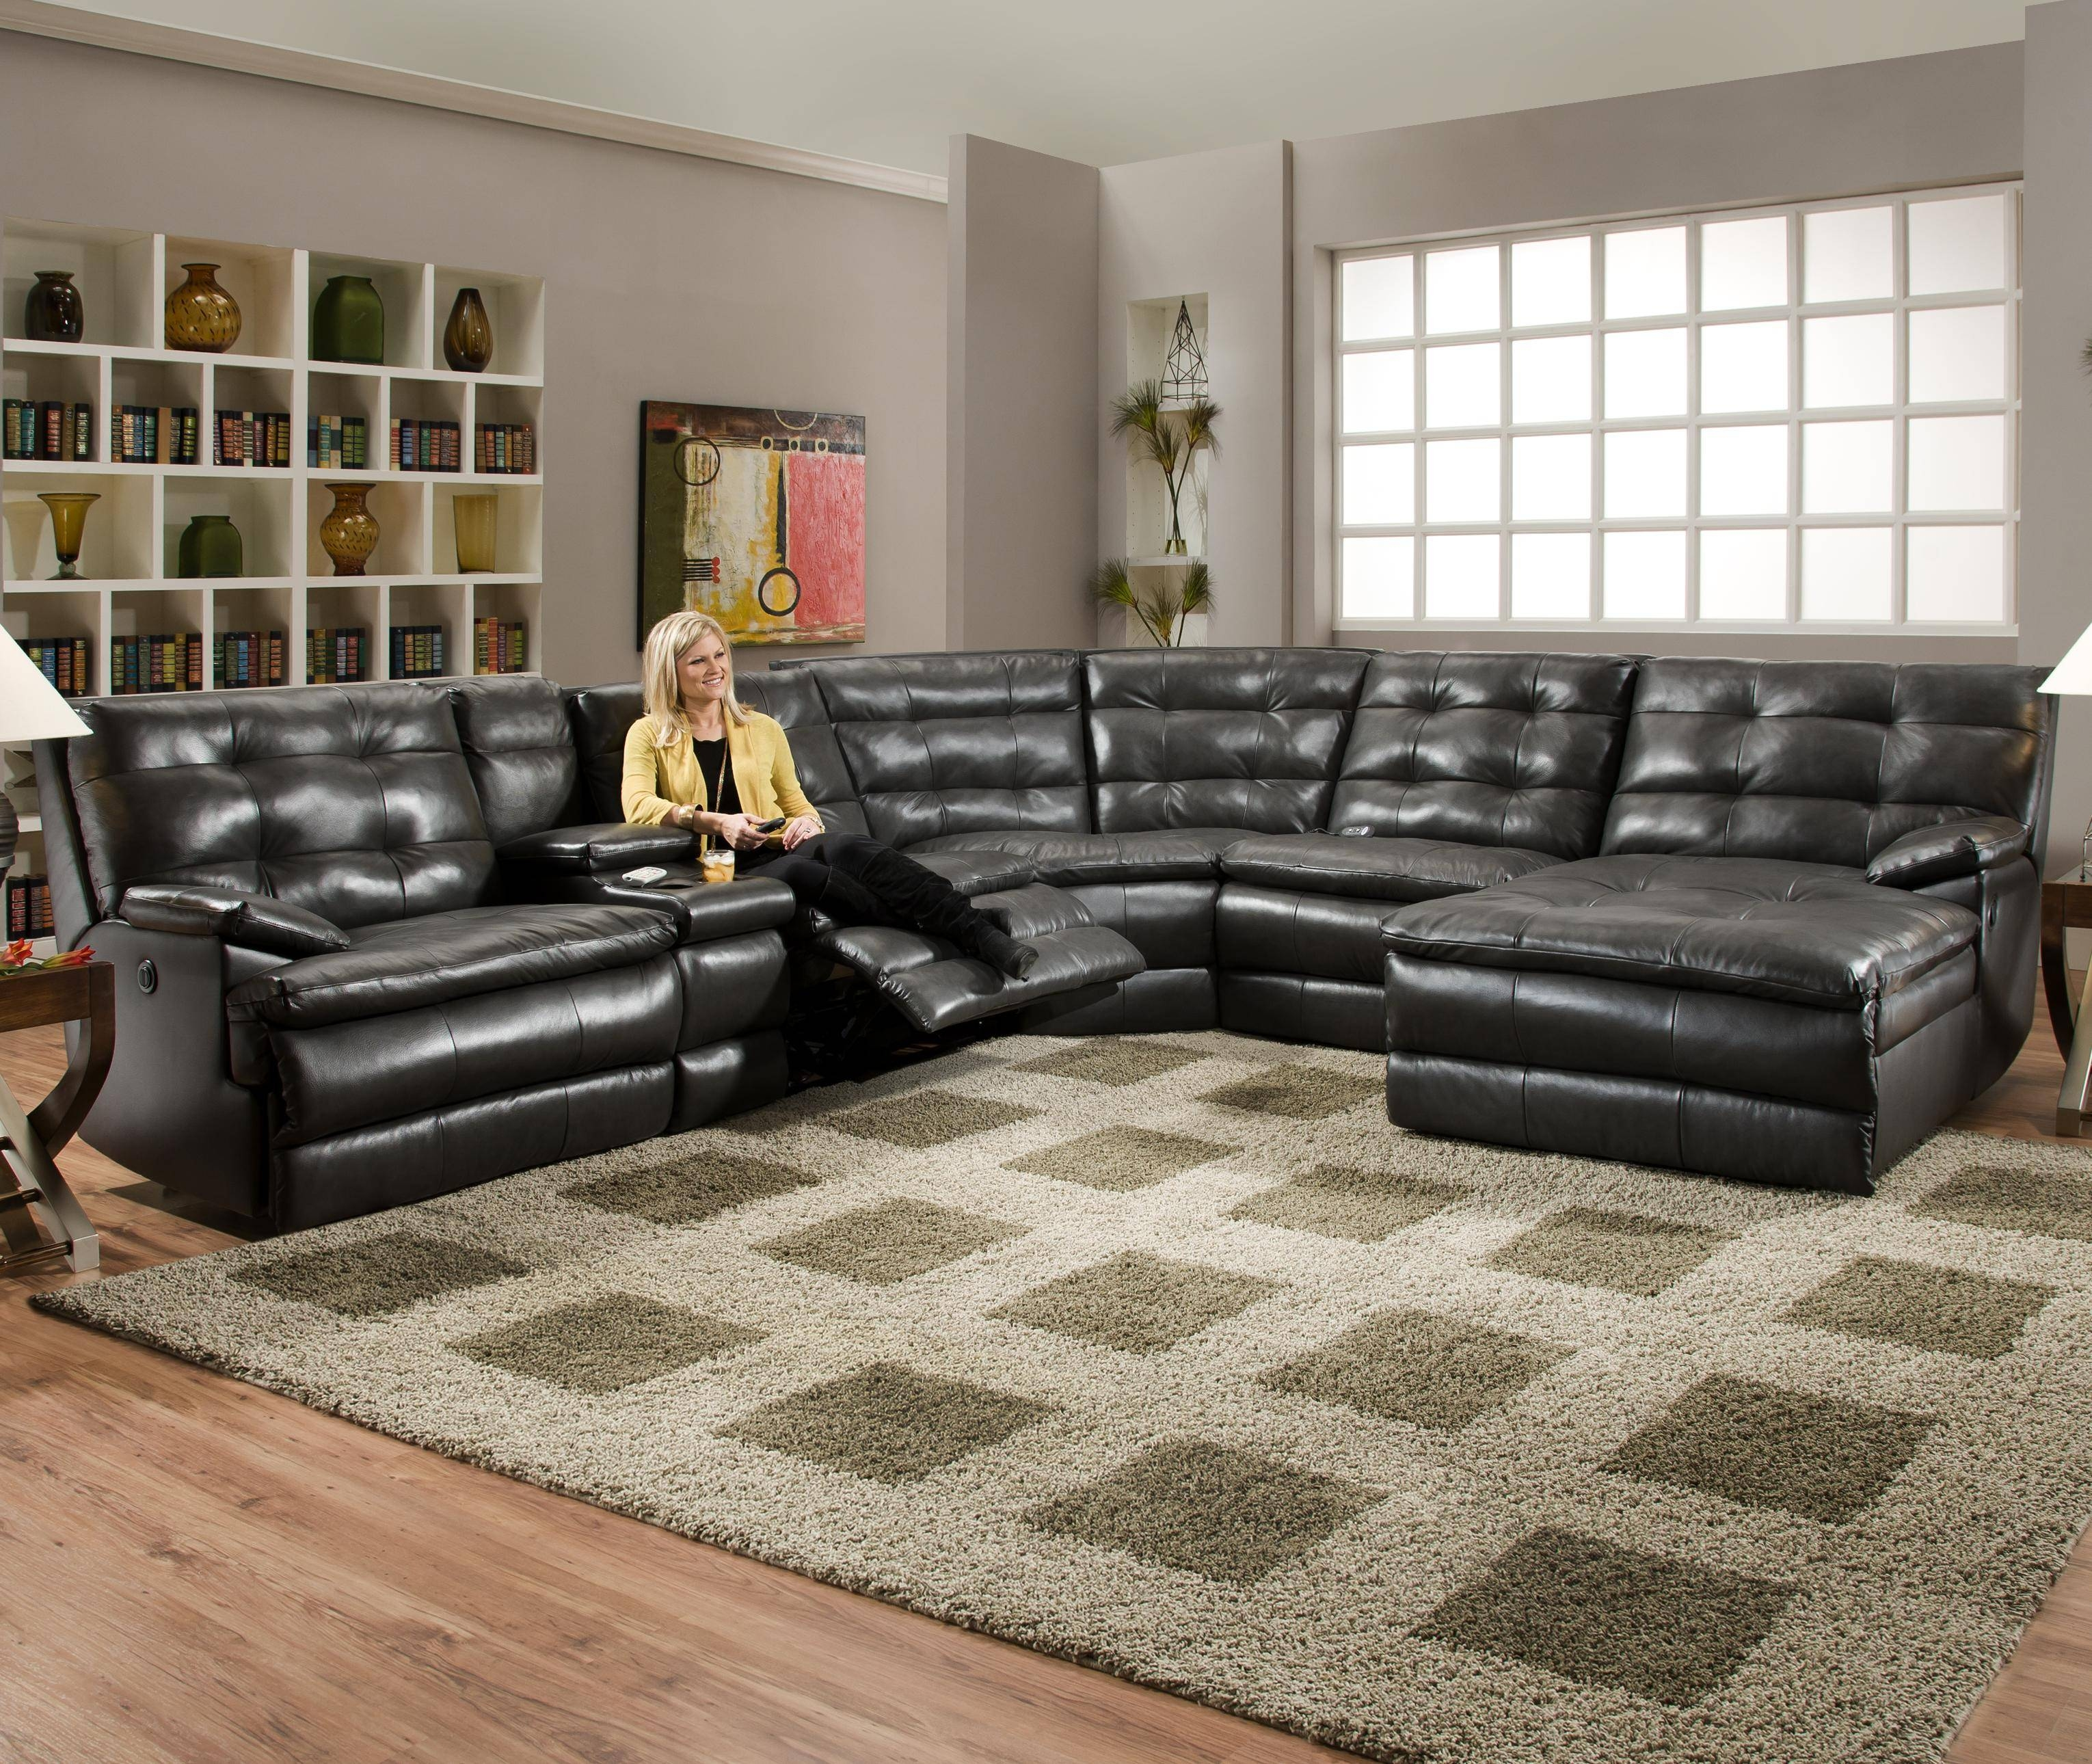 30 Best Collection of Extra Large Sectional Sofas